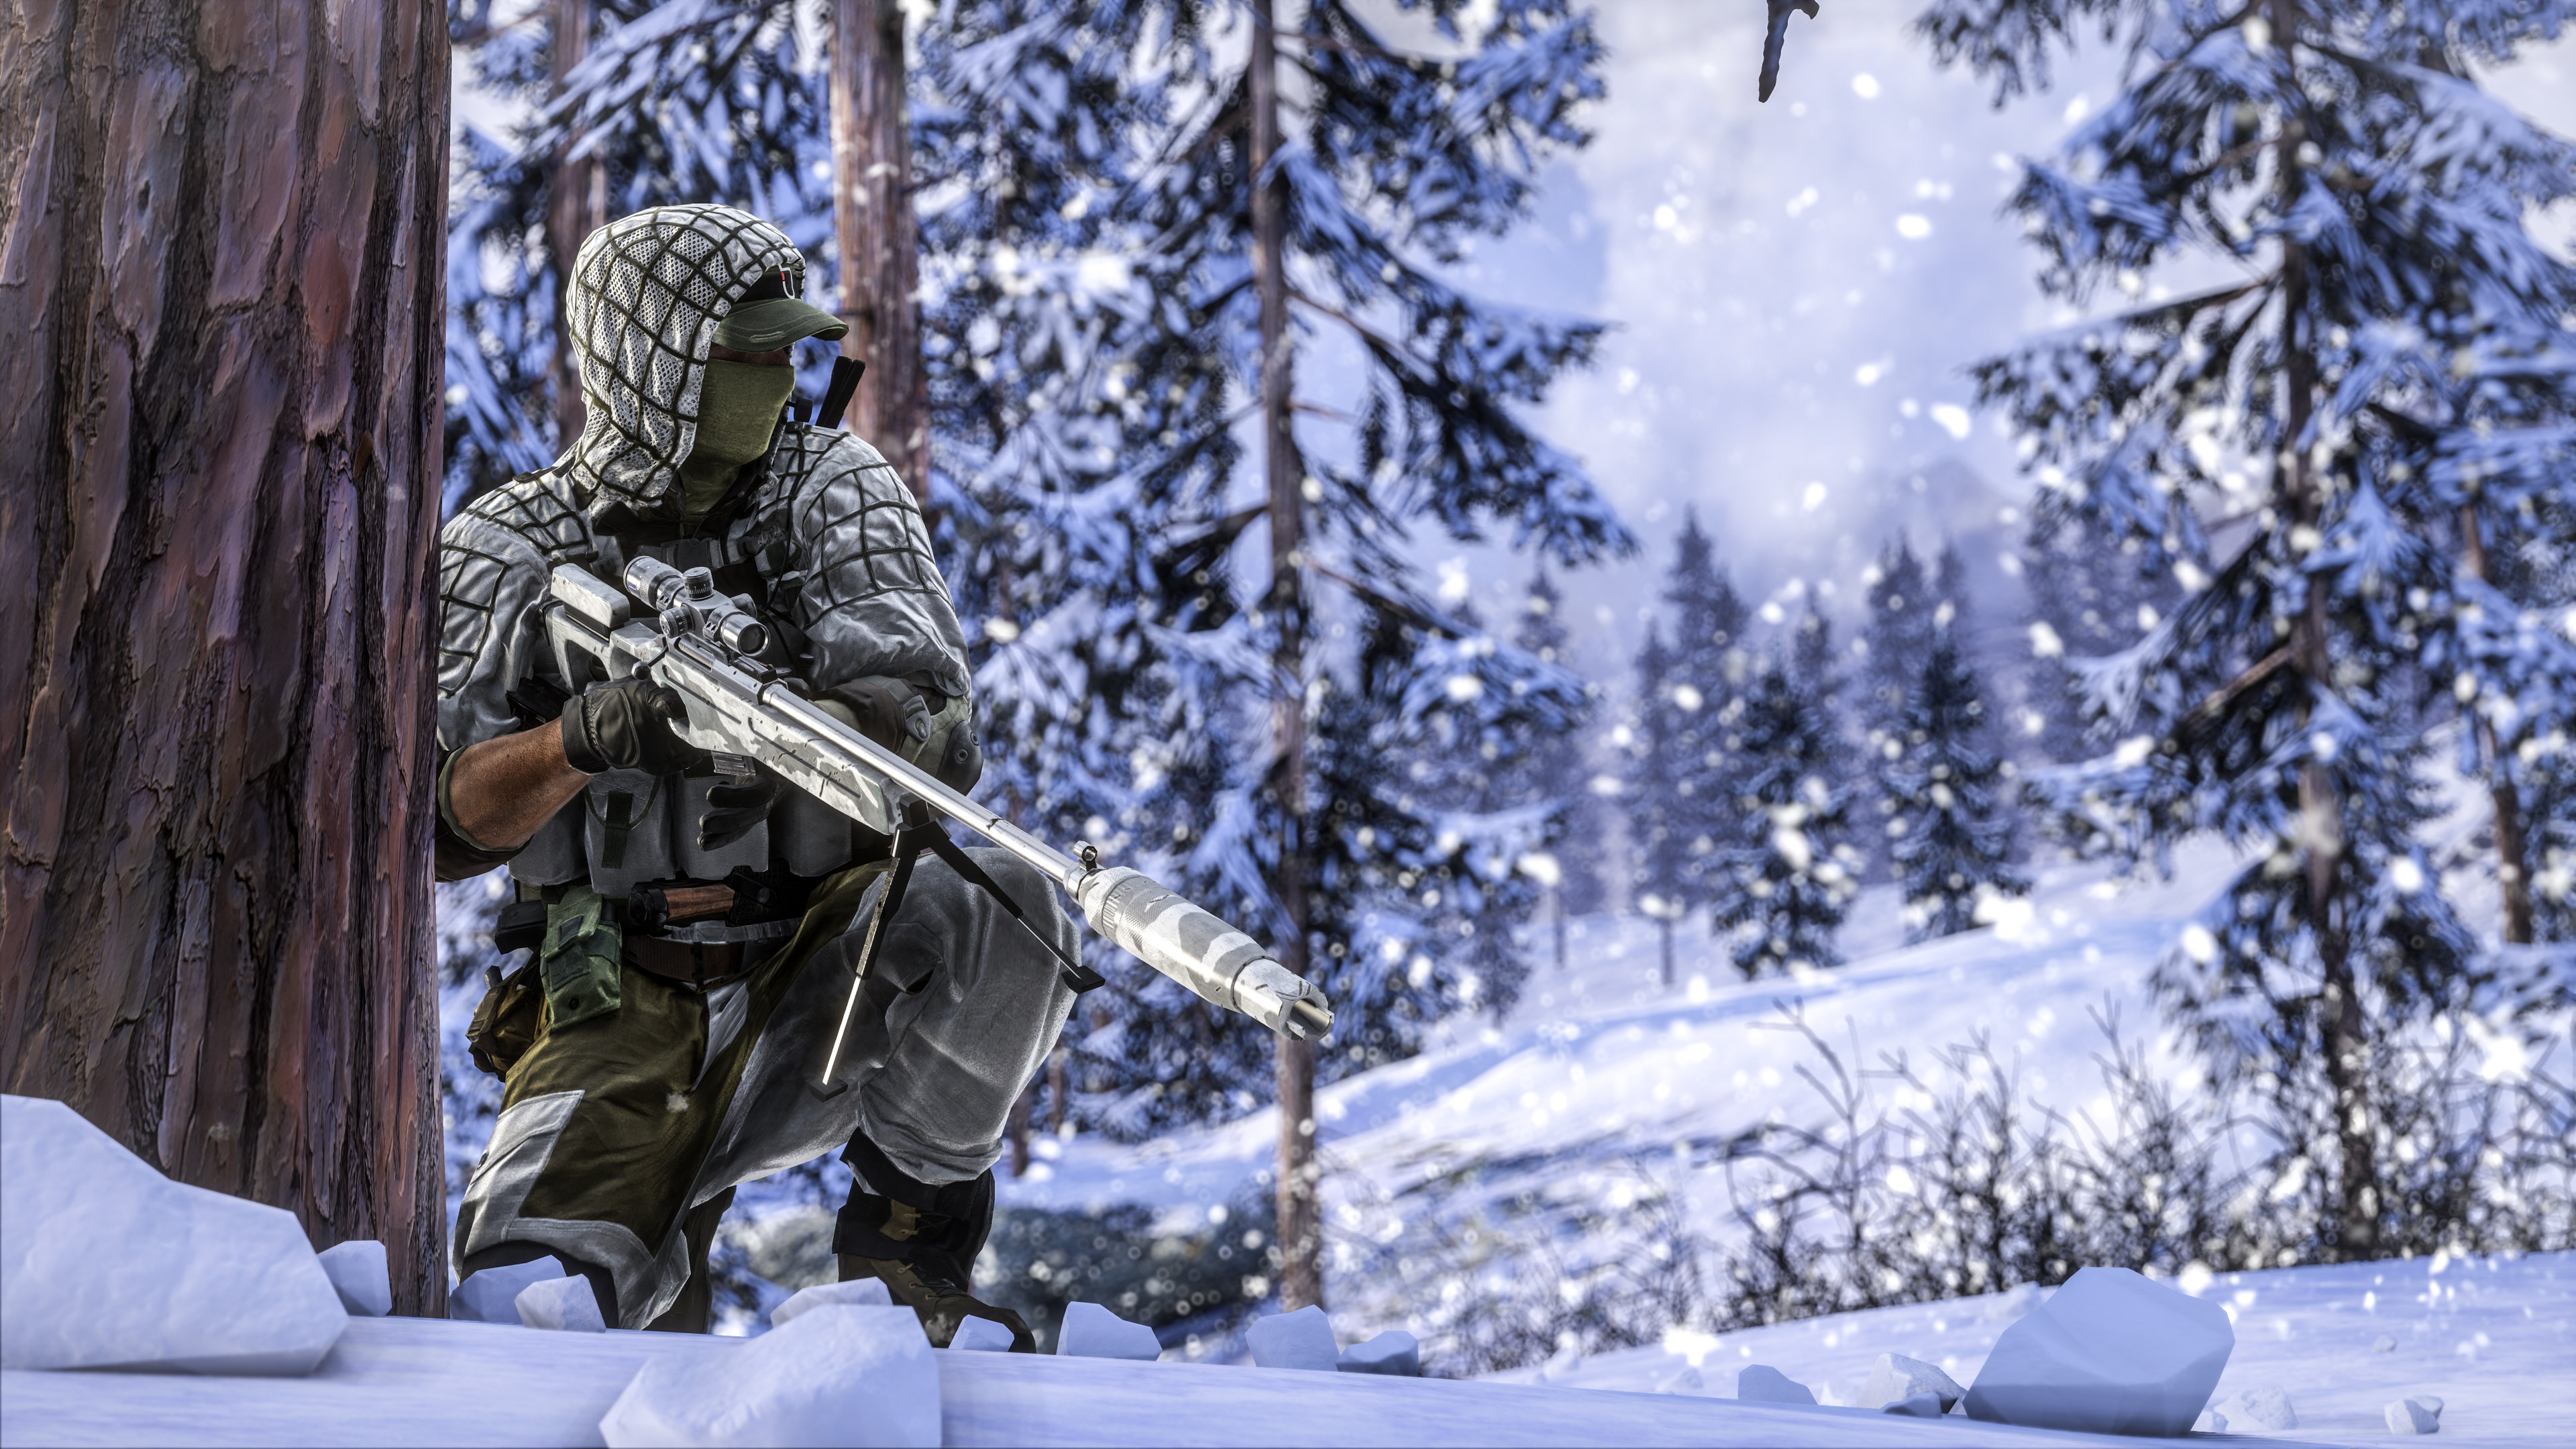 Download Uhd 4k Battlefield 4 Pc Background Id 498253 For Free